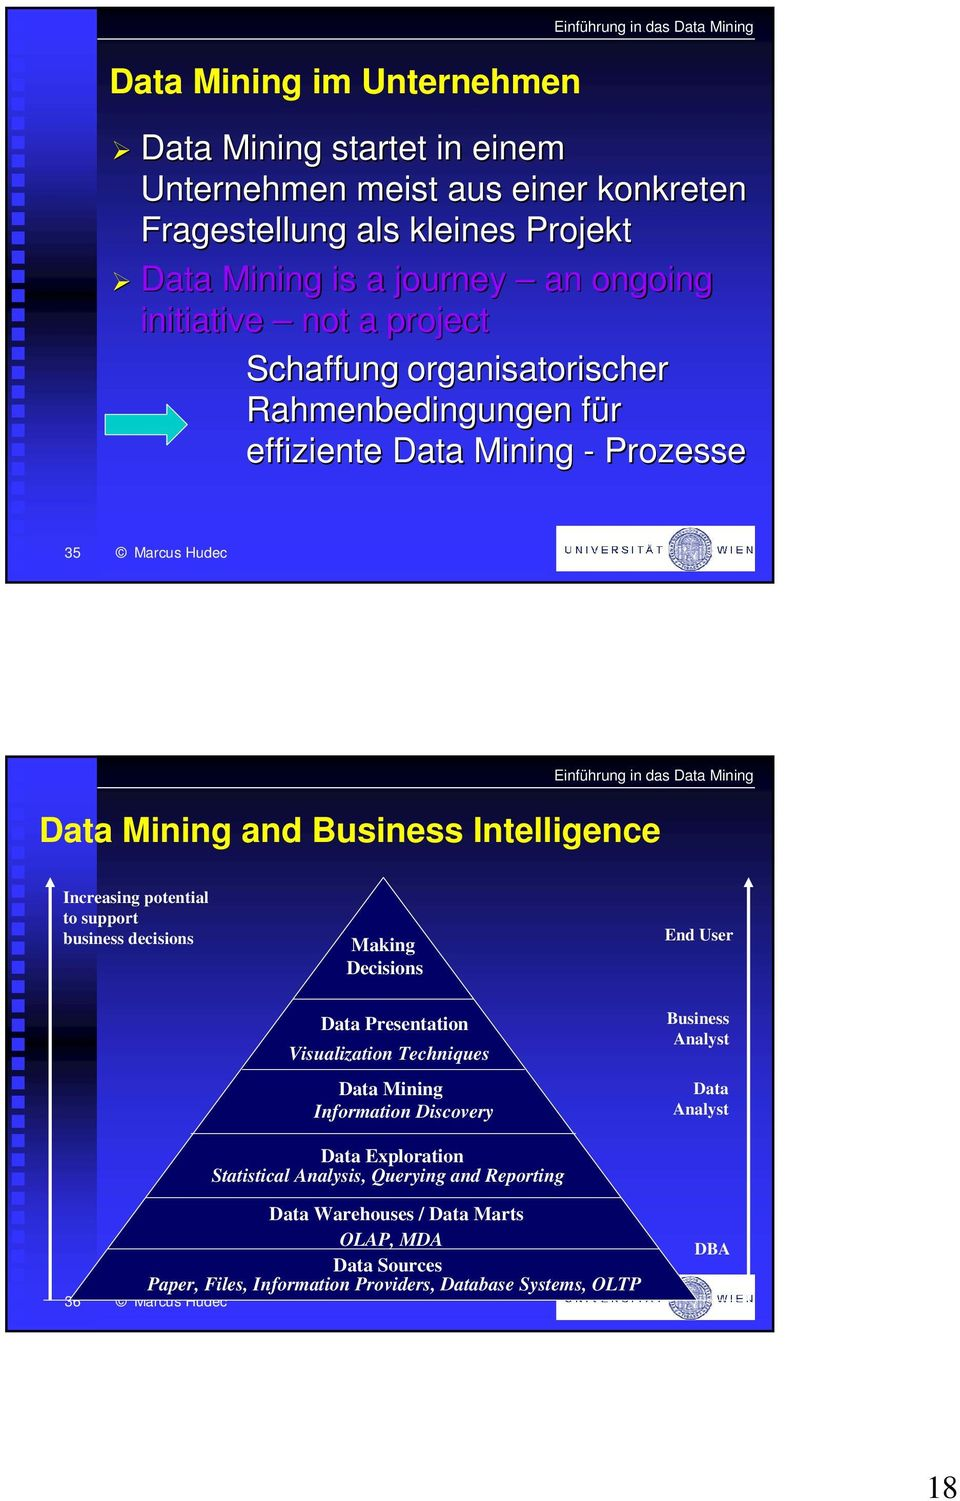 potential to support business decisions Making Decisions End User Data Presentation Visualization Techniques Data Mining Information Discovery Data Exploration